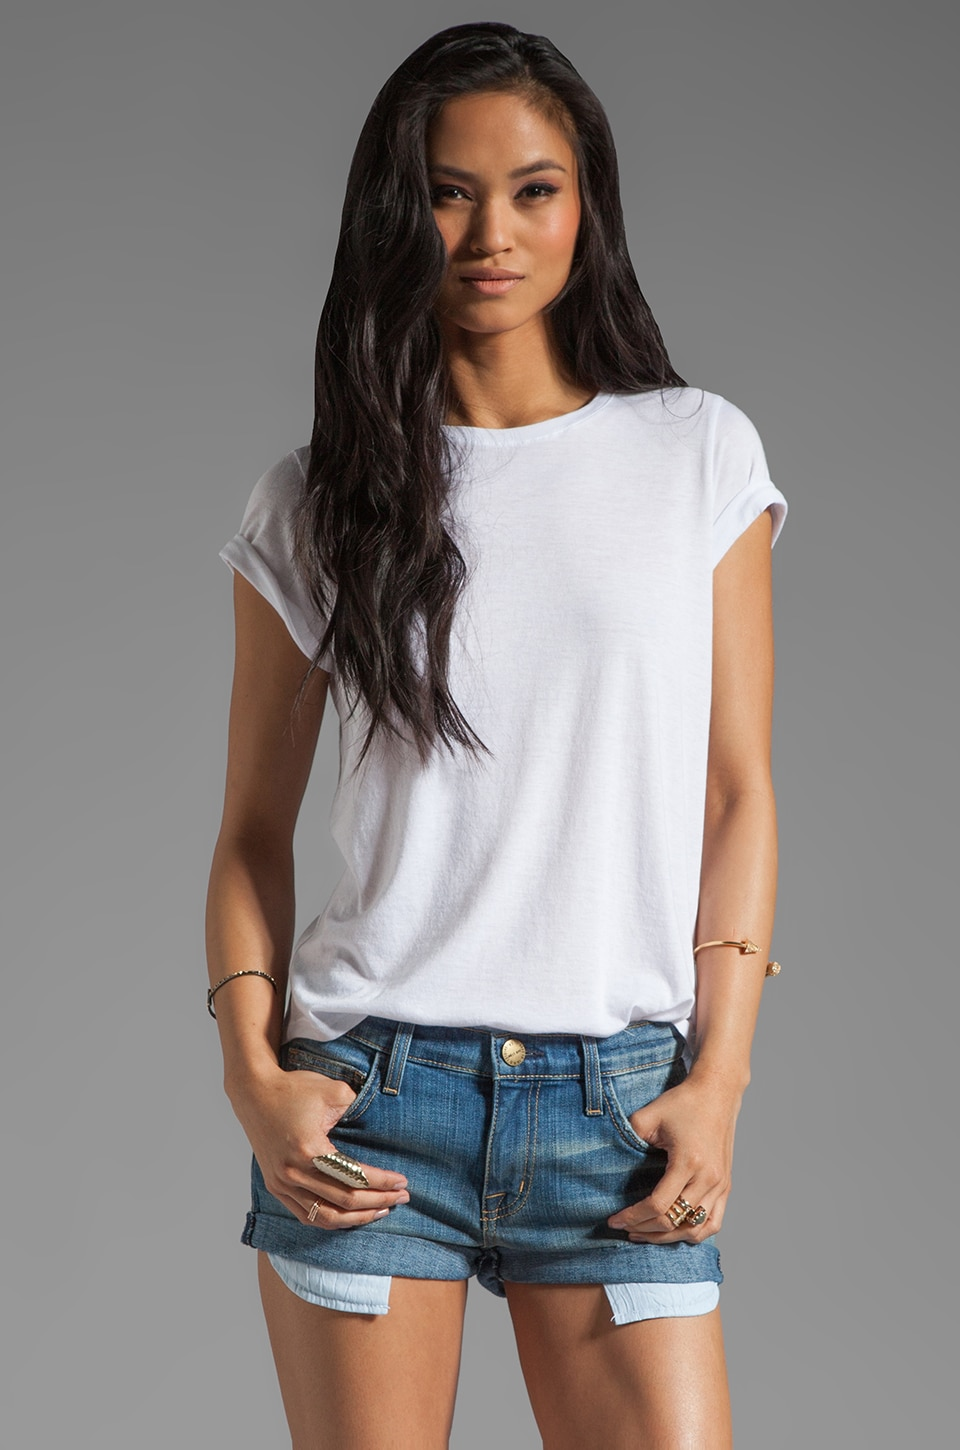 Vince Basic Tees Shirt Tail S/S Tee in White